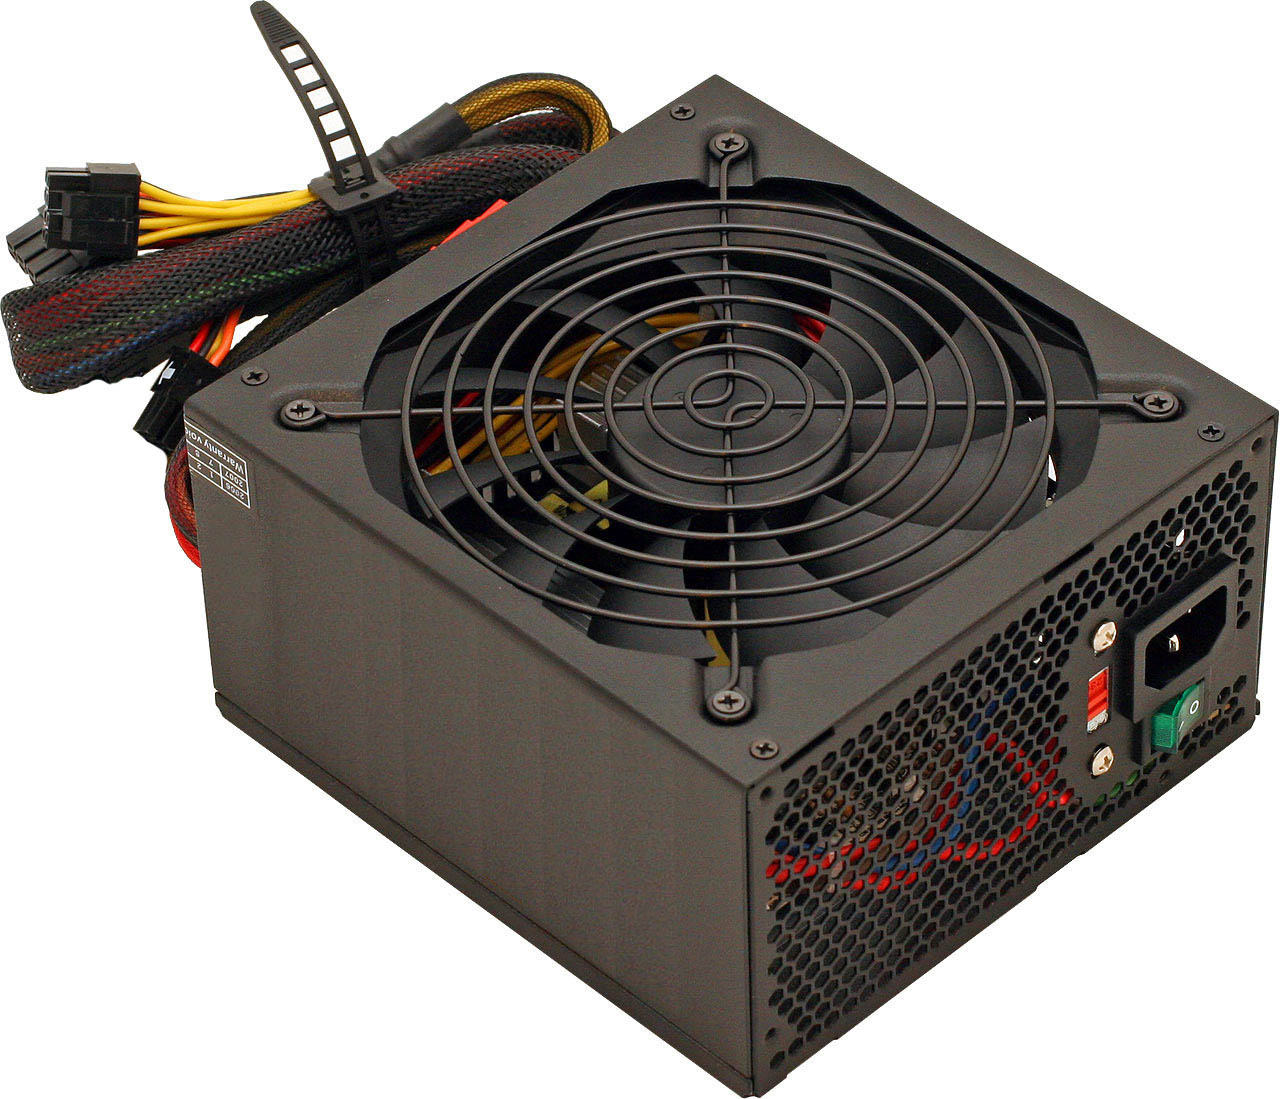 800W Master Modular 80+ Power Supply